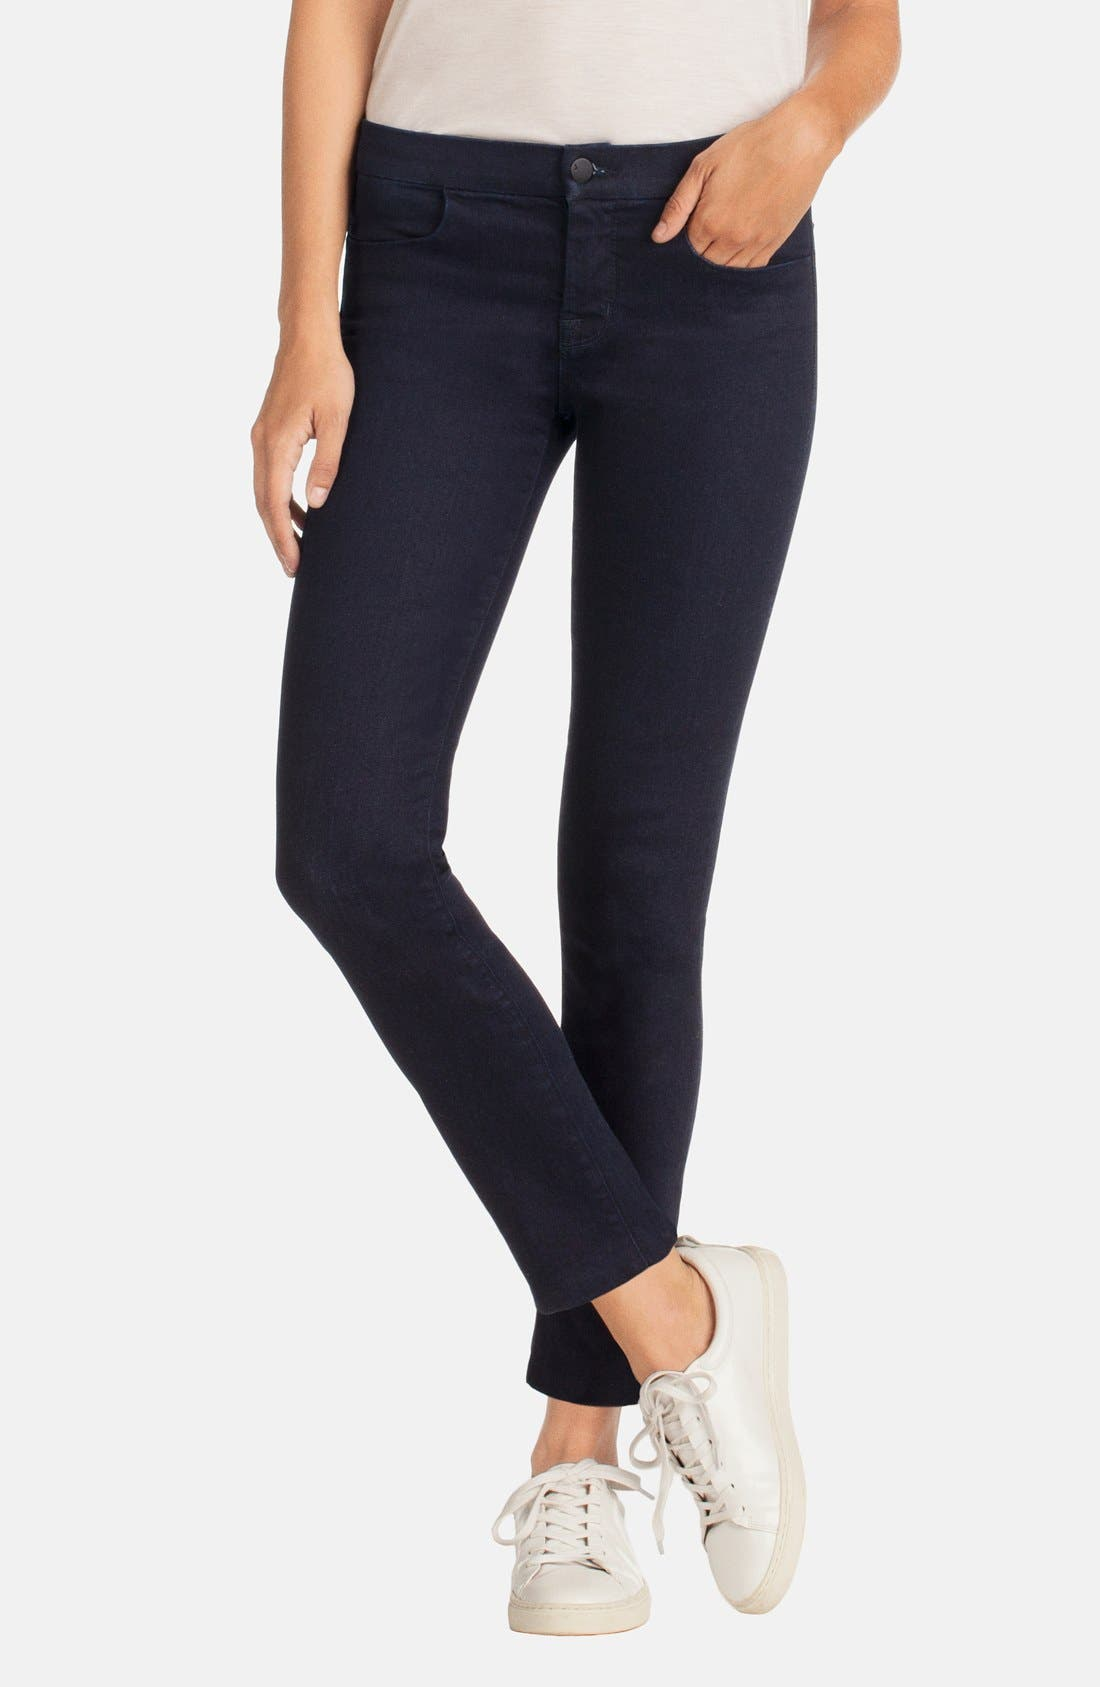 Alternate Image 1 Selected - J Brand Tailored Crop Jeans (Inkwell)